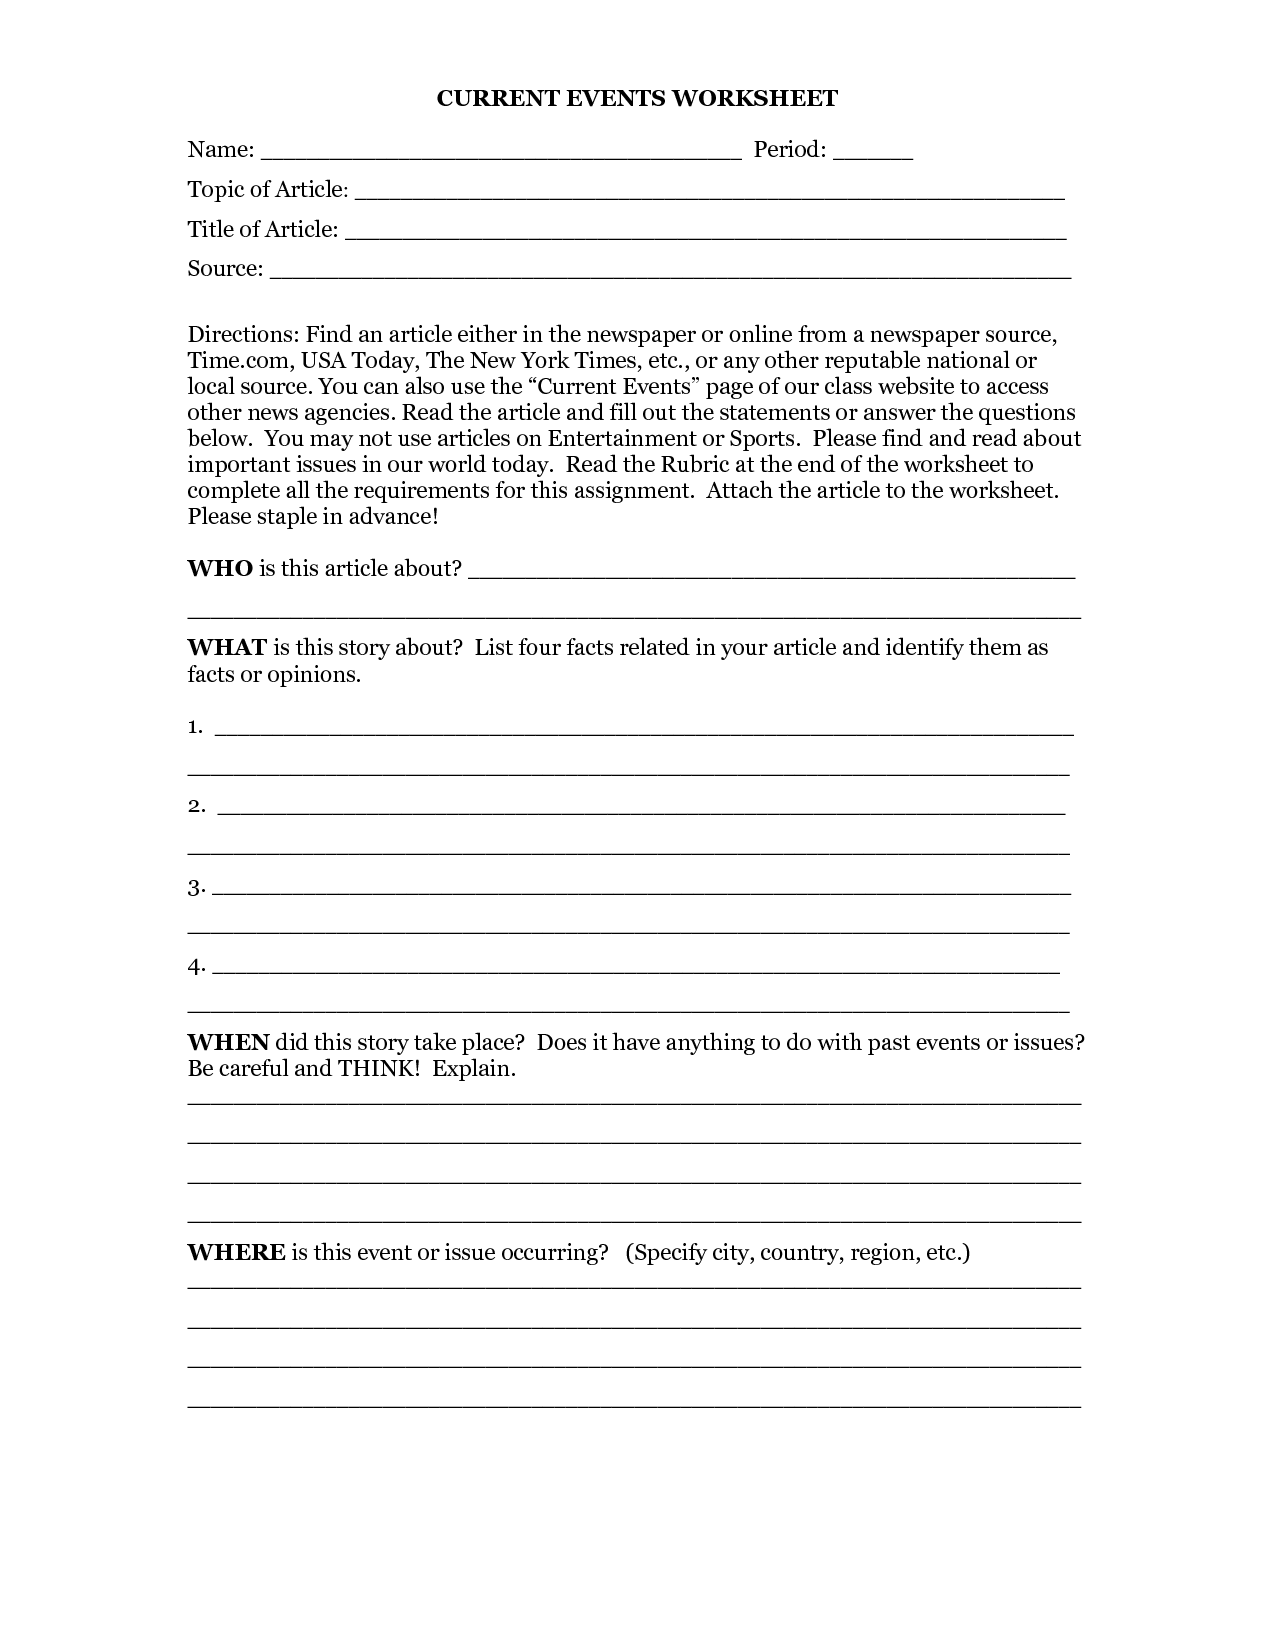 16 Best Images Of Science Current Events Worksheet